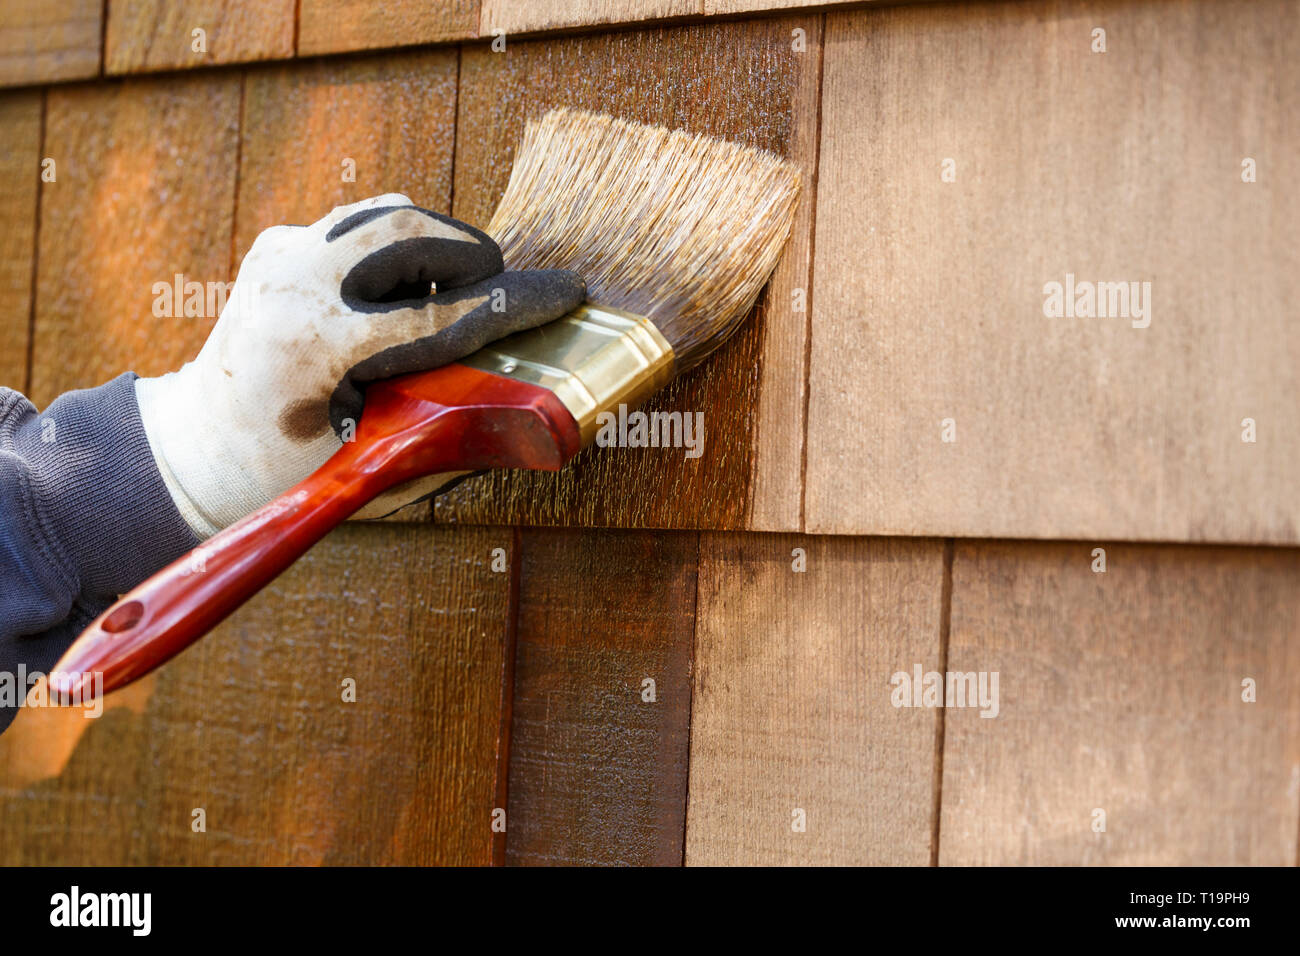 Close-up of hand wearing protective work gloves with brush paintbrush applying stain to cedar wood shingles exterior siding. Home improvement DIY. - Stock Image